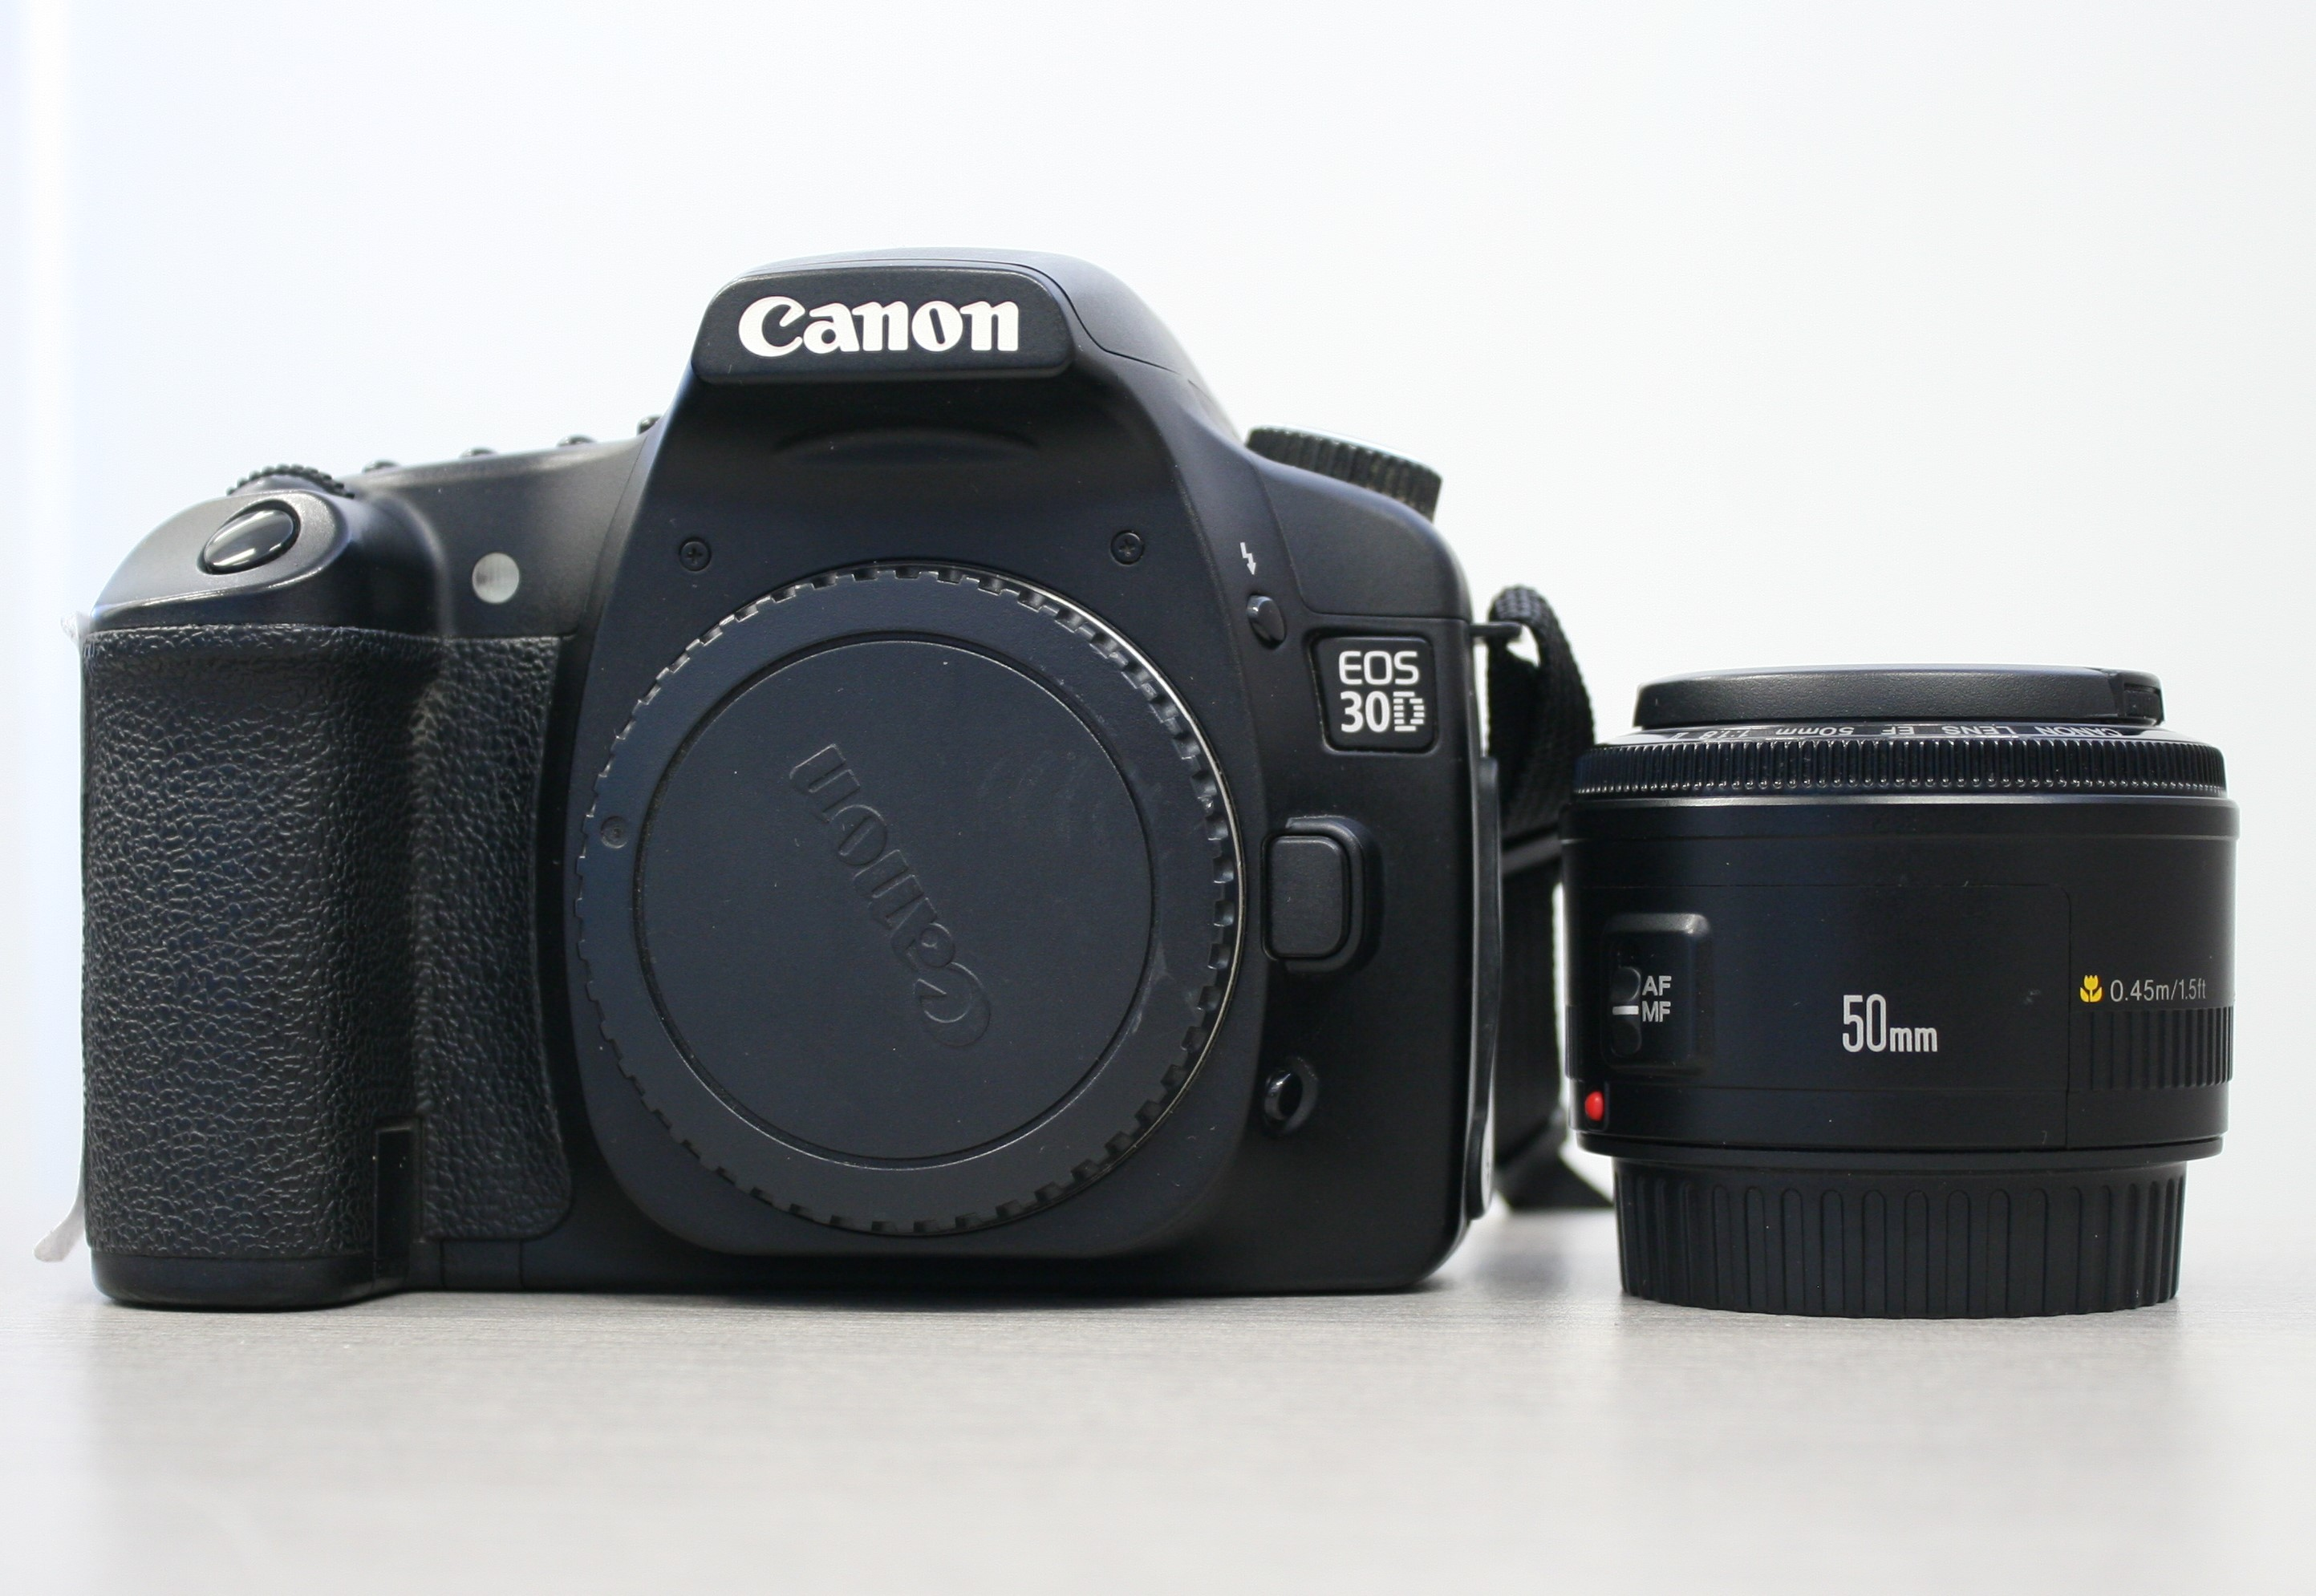 Canon EOS 30 D with 50mm lens